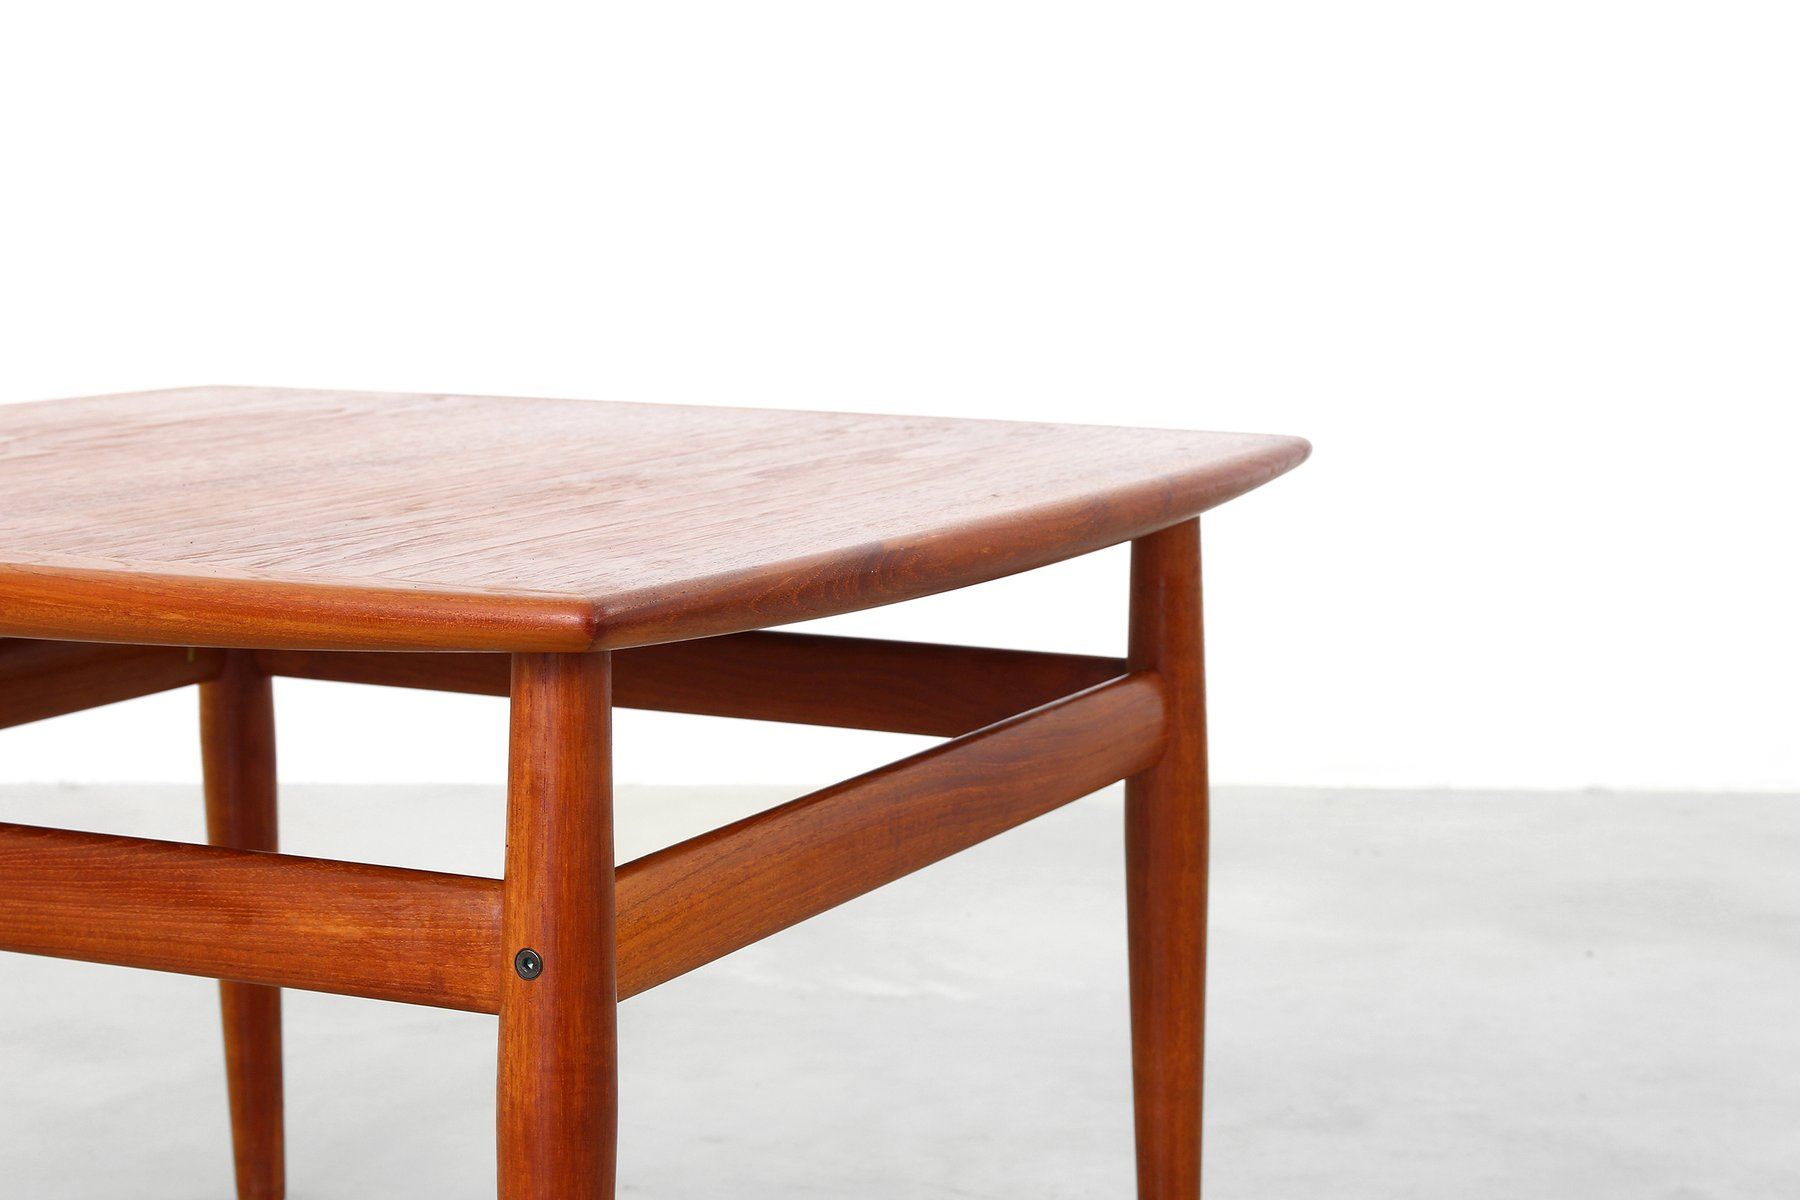 Danish Coffee Table by Grete Jalk for Glostrup M¸belfabrik 1950s